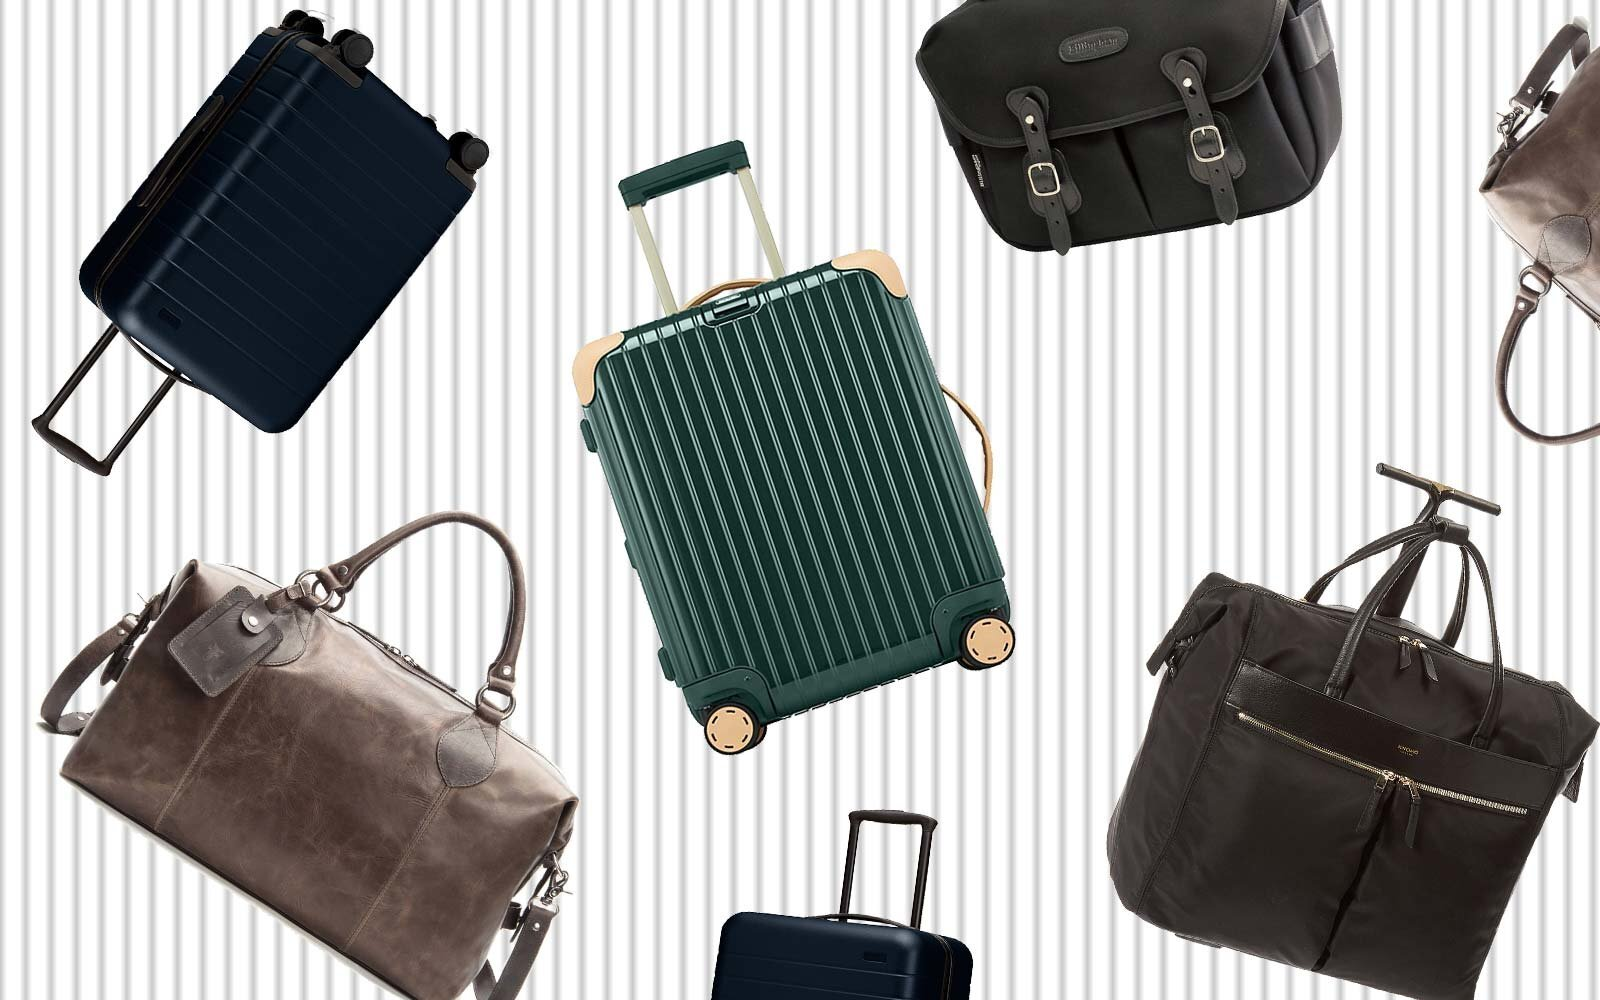 66b6f578f860 The Best Travel Bags: Carry-on, Checked, & Beyond | Travel + Leisure